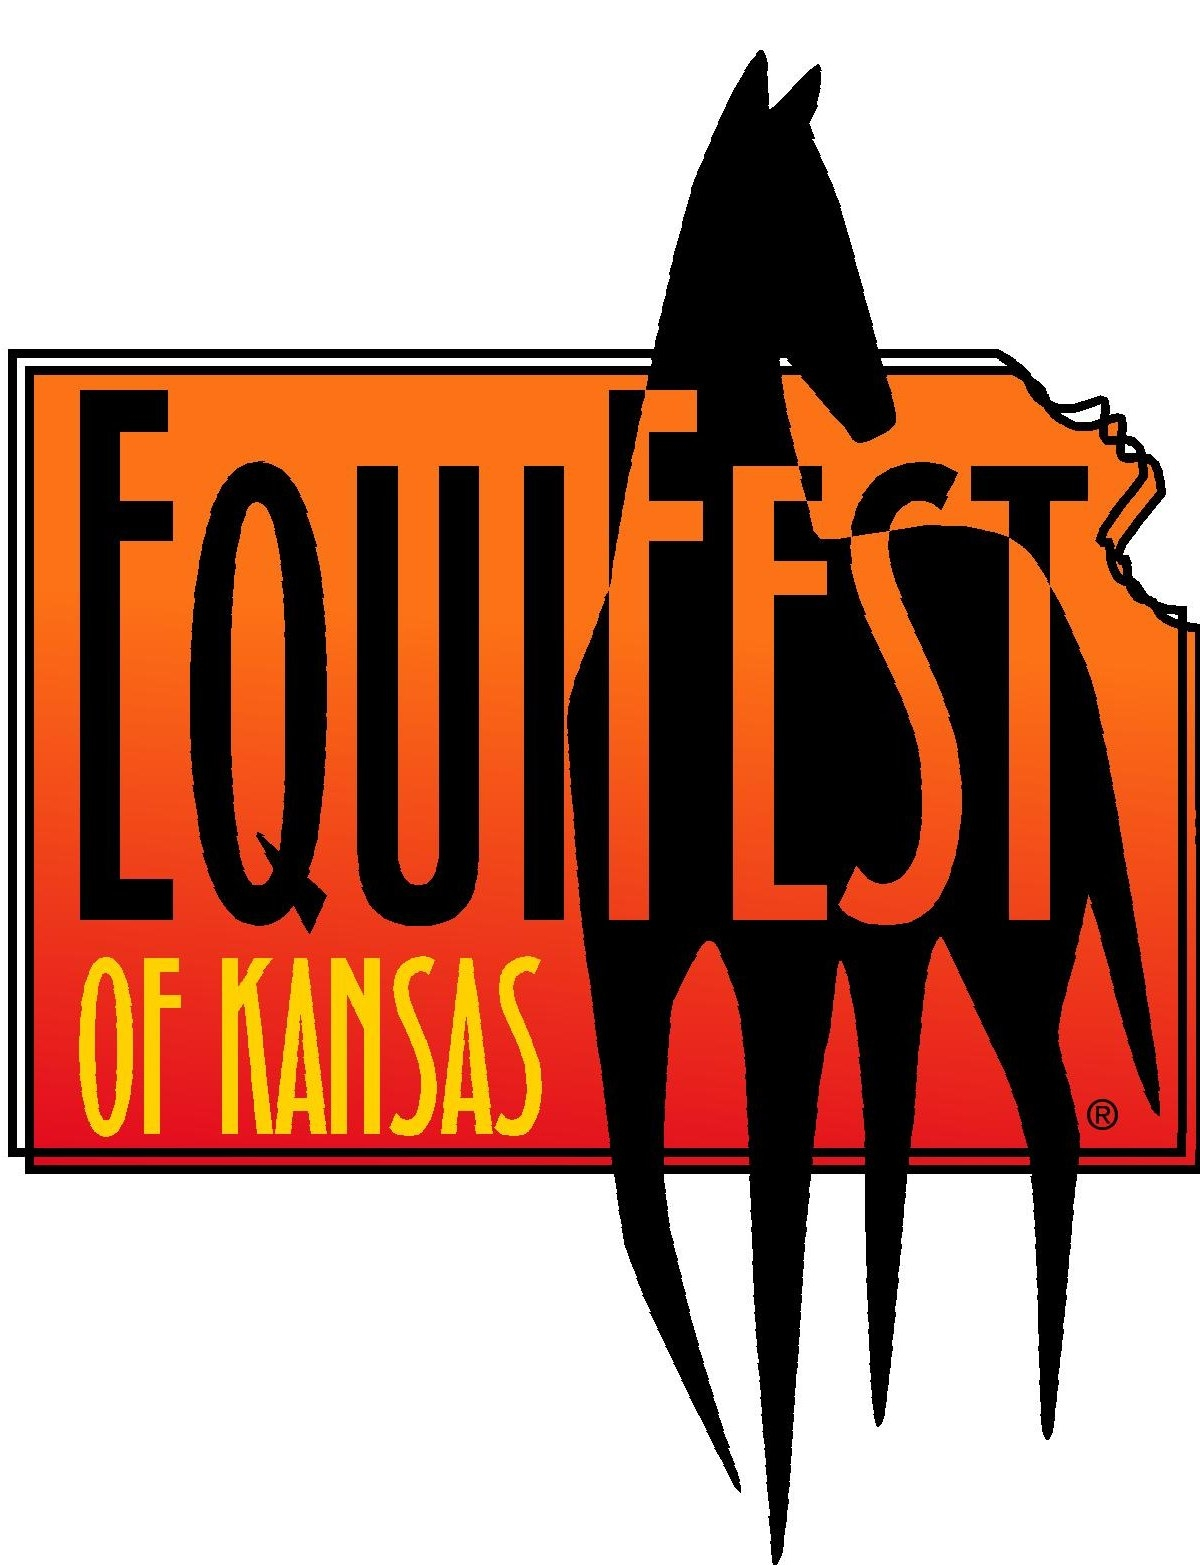 EquiFest of Kansas February 2012